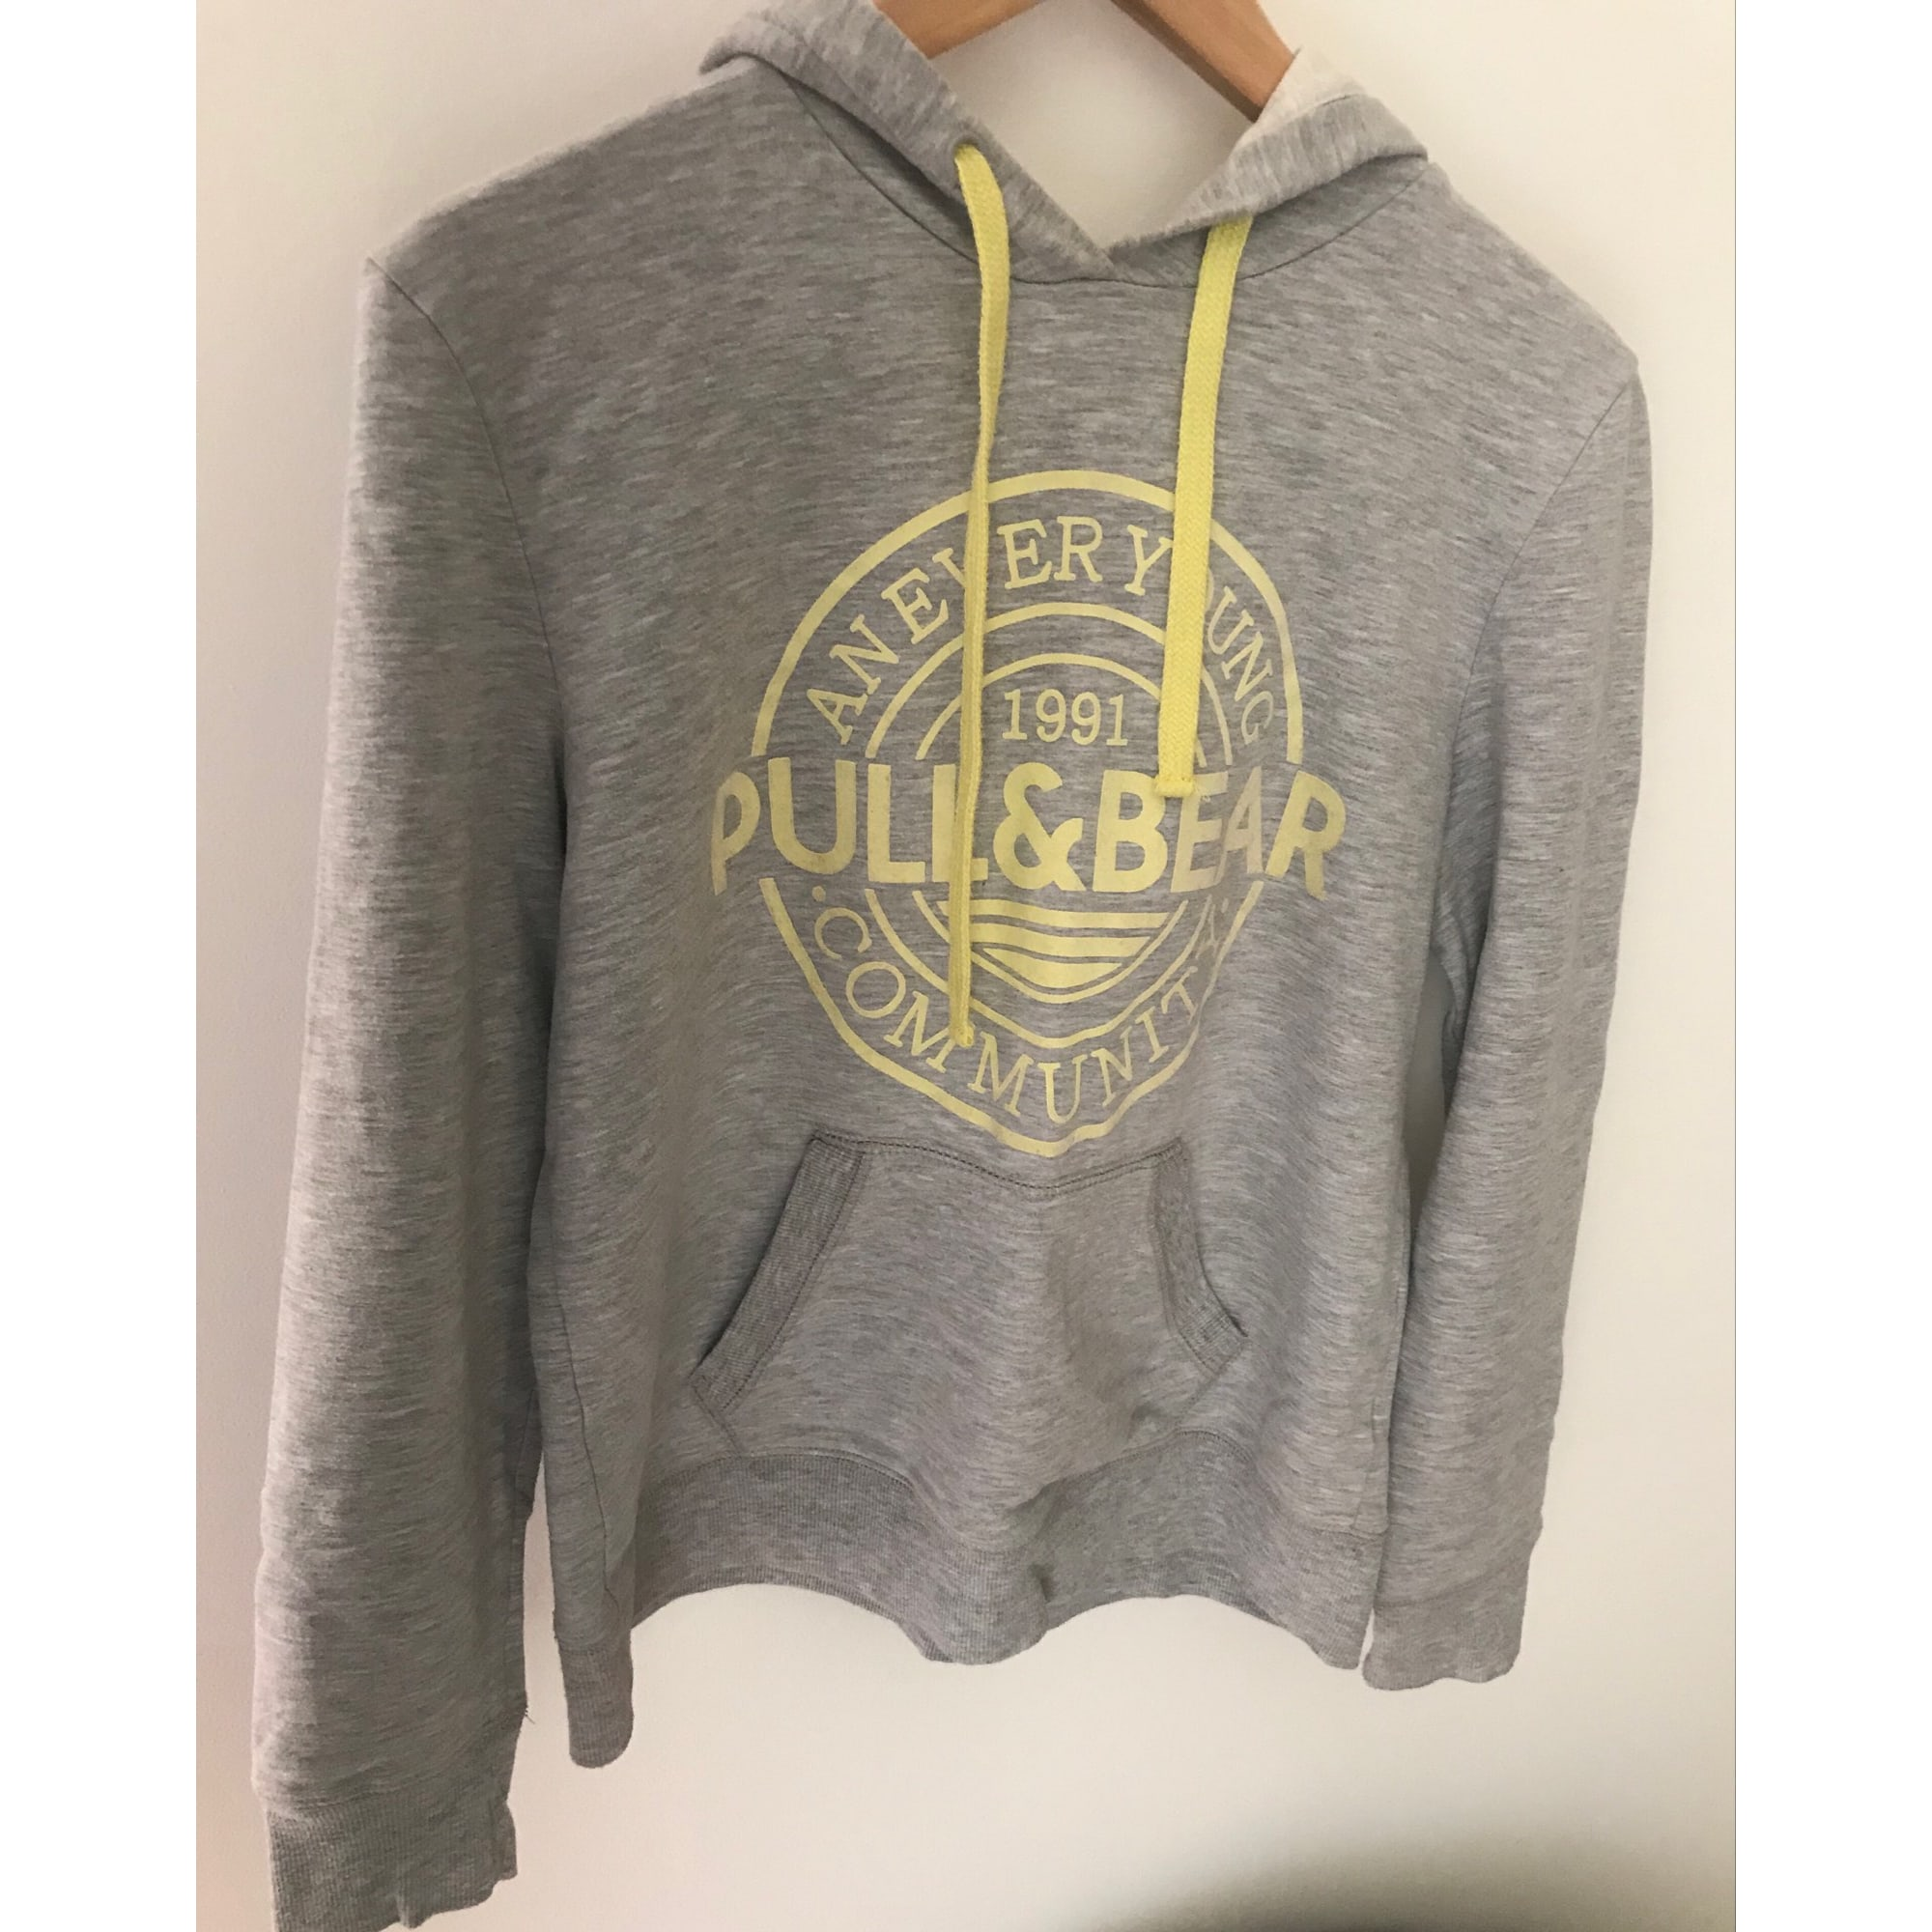 Sweat capuche pull homme Pull and Bear neuf taille M